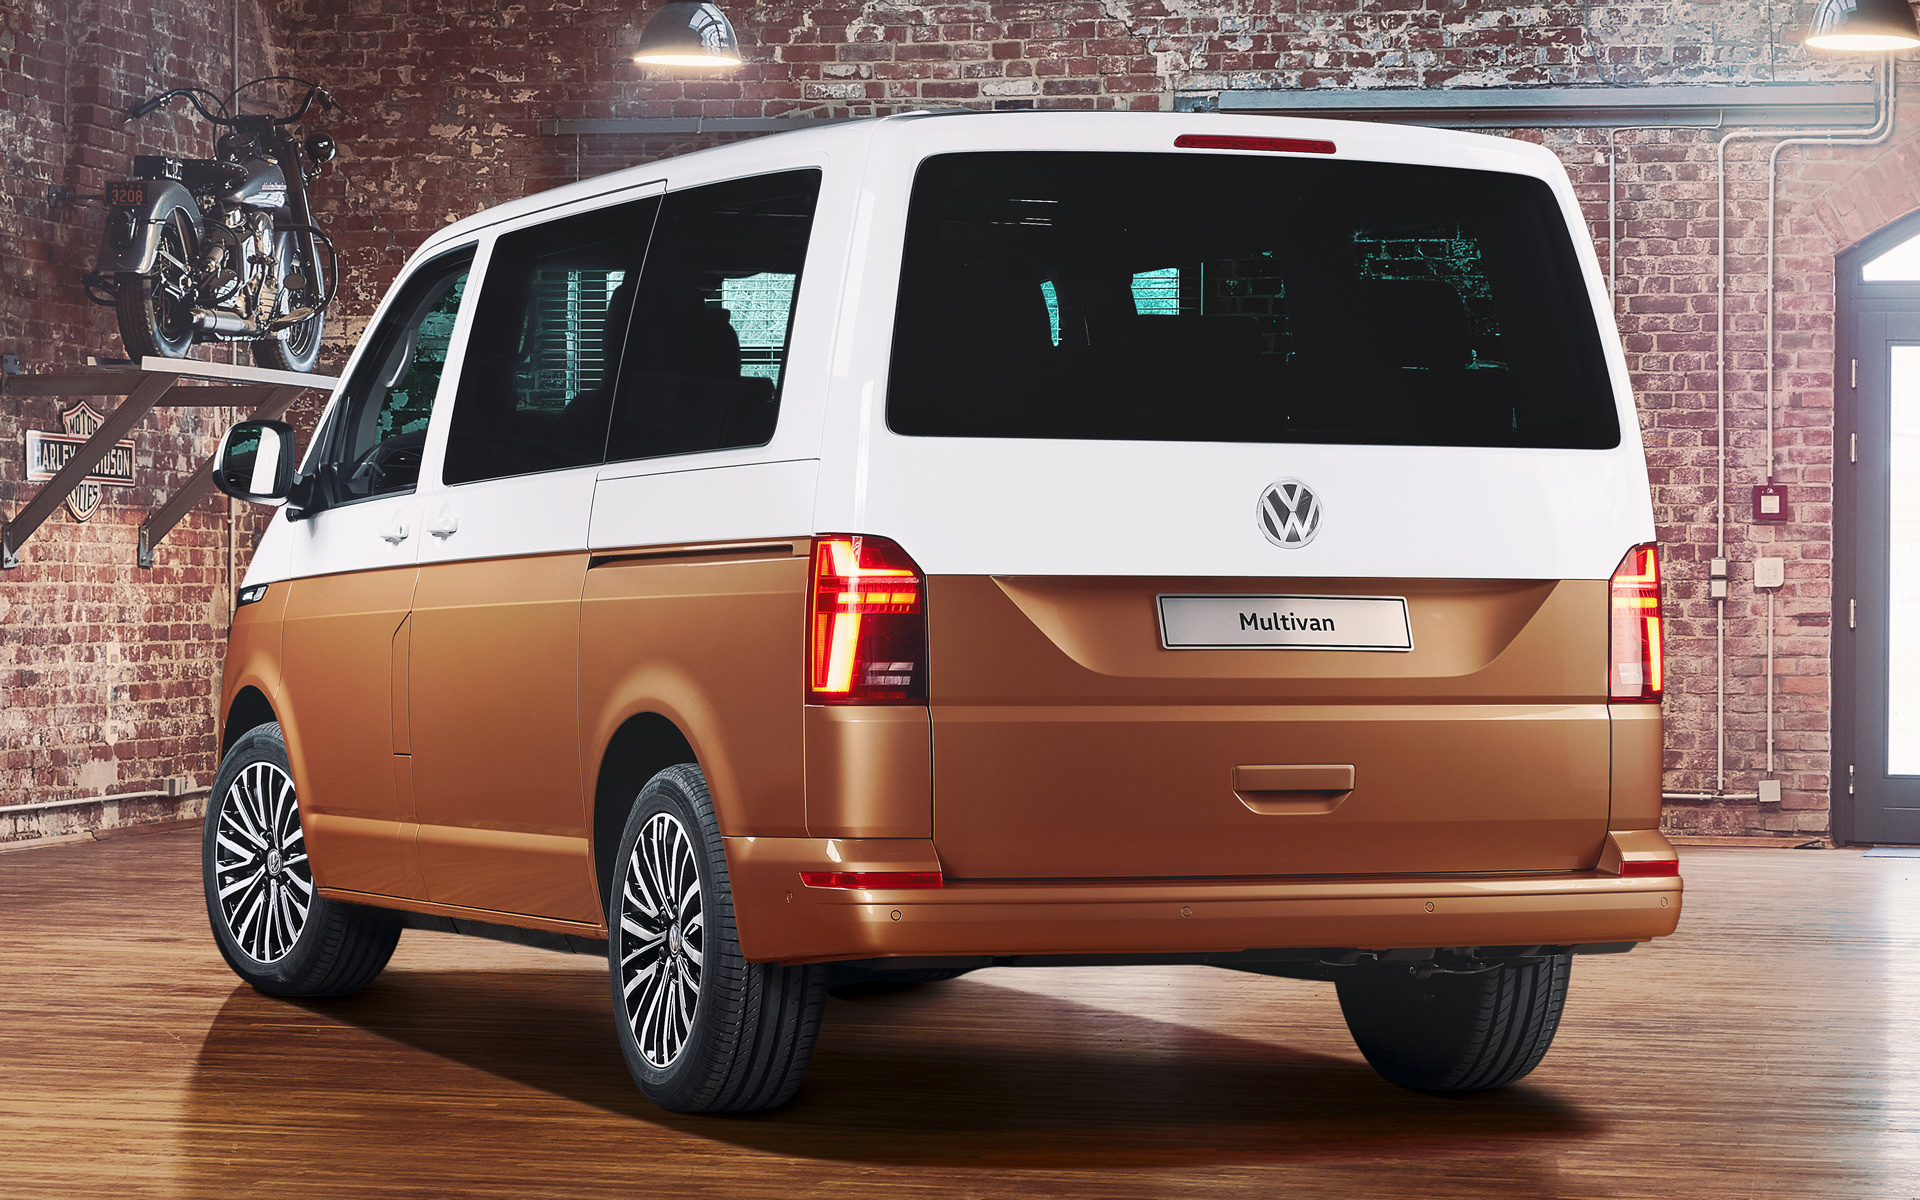 2019 Volkswagen Multivan Bulli Wallpapers And Hd Images